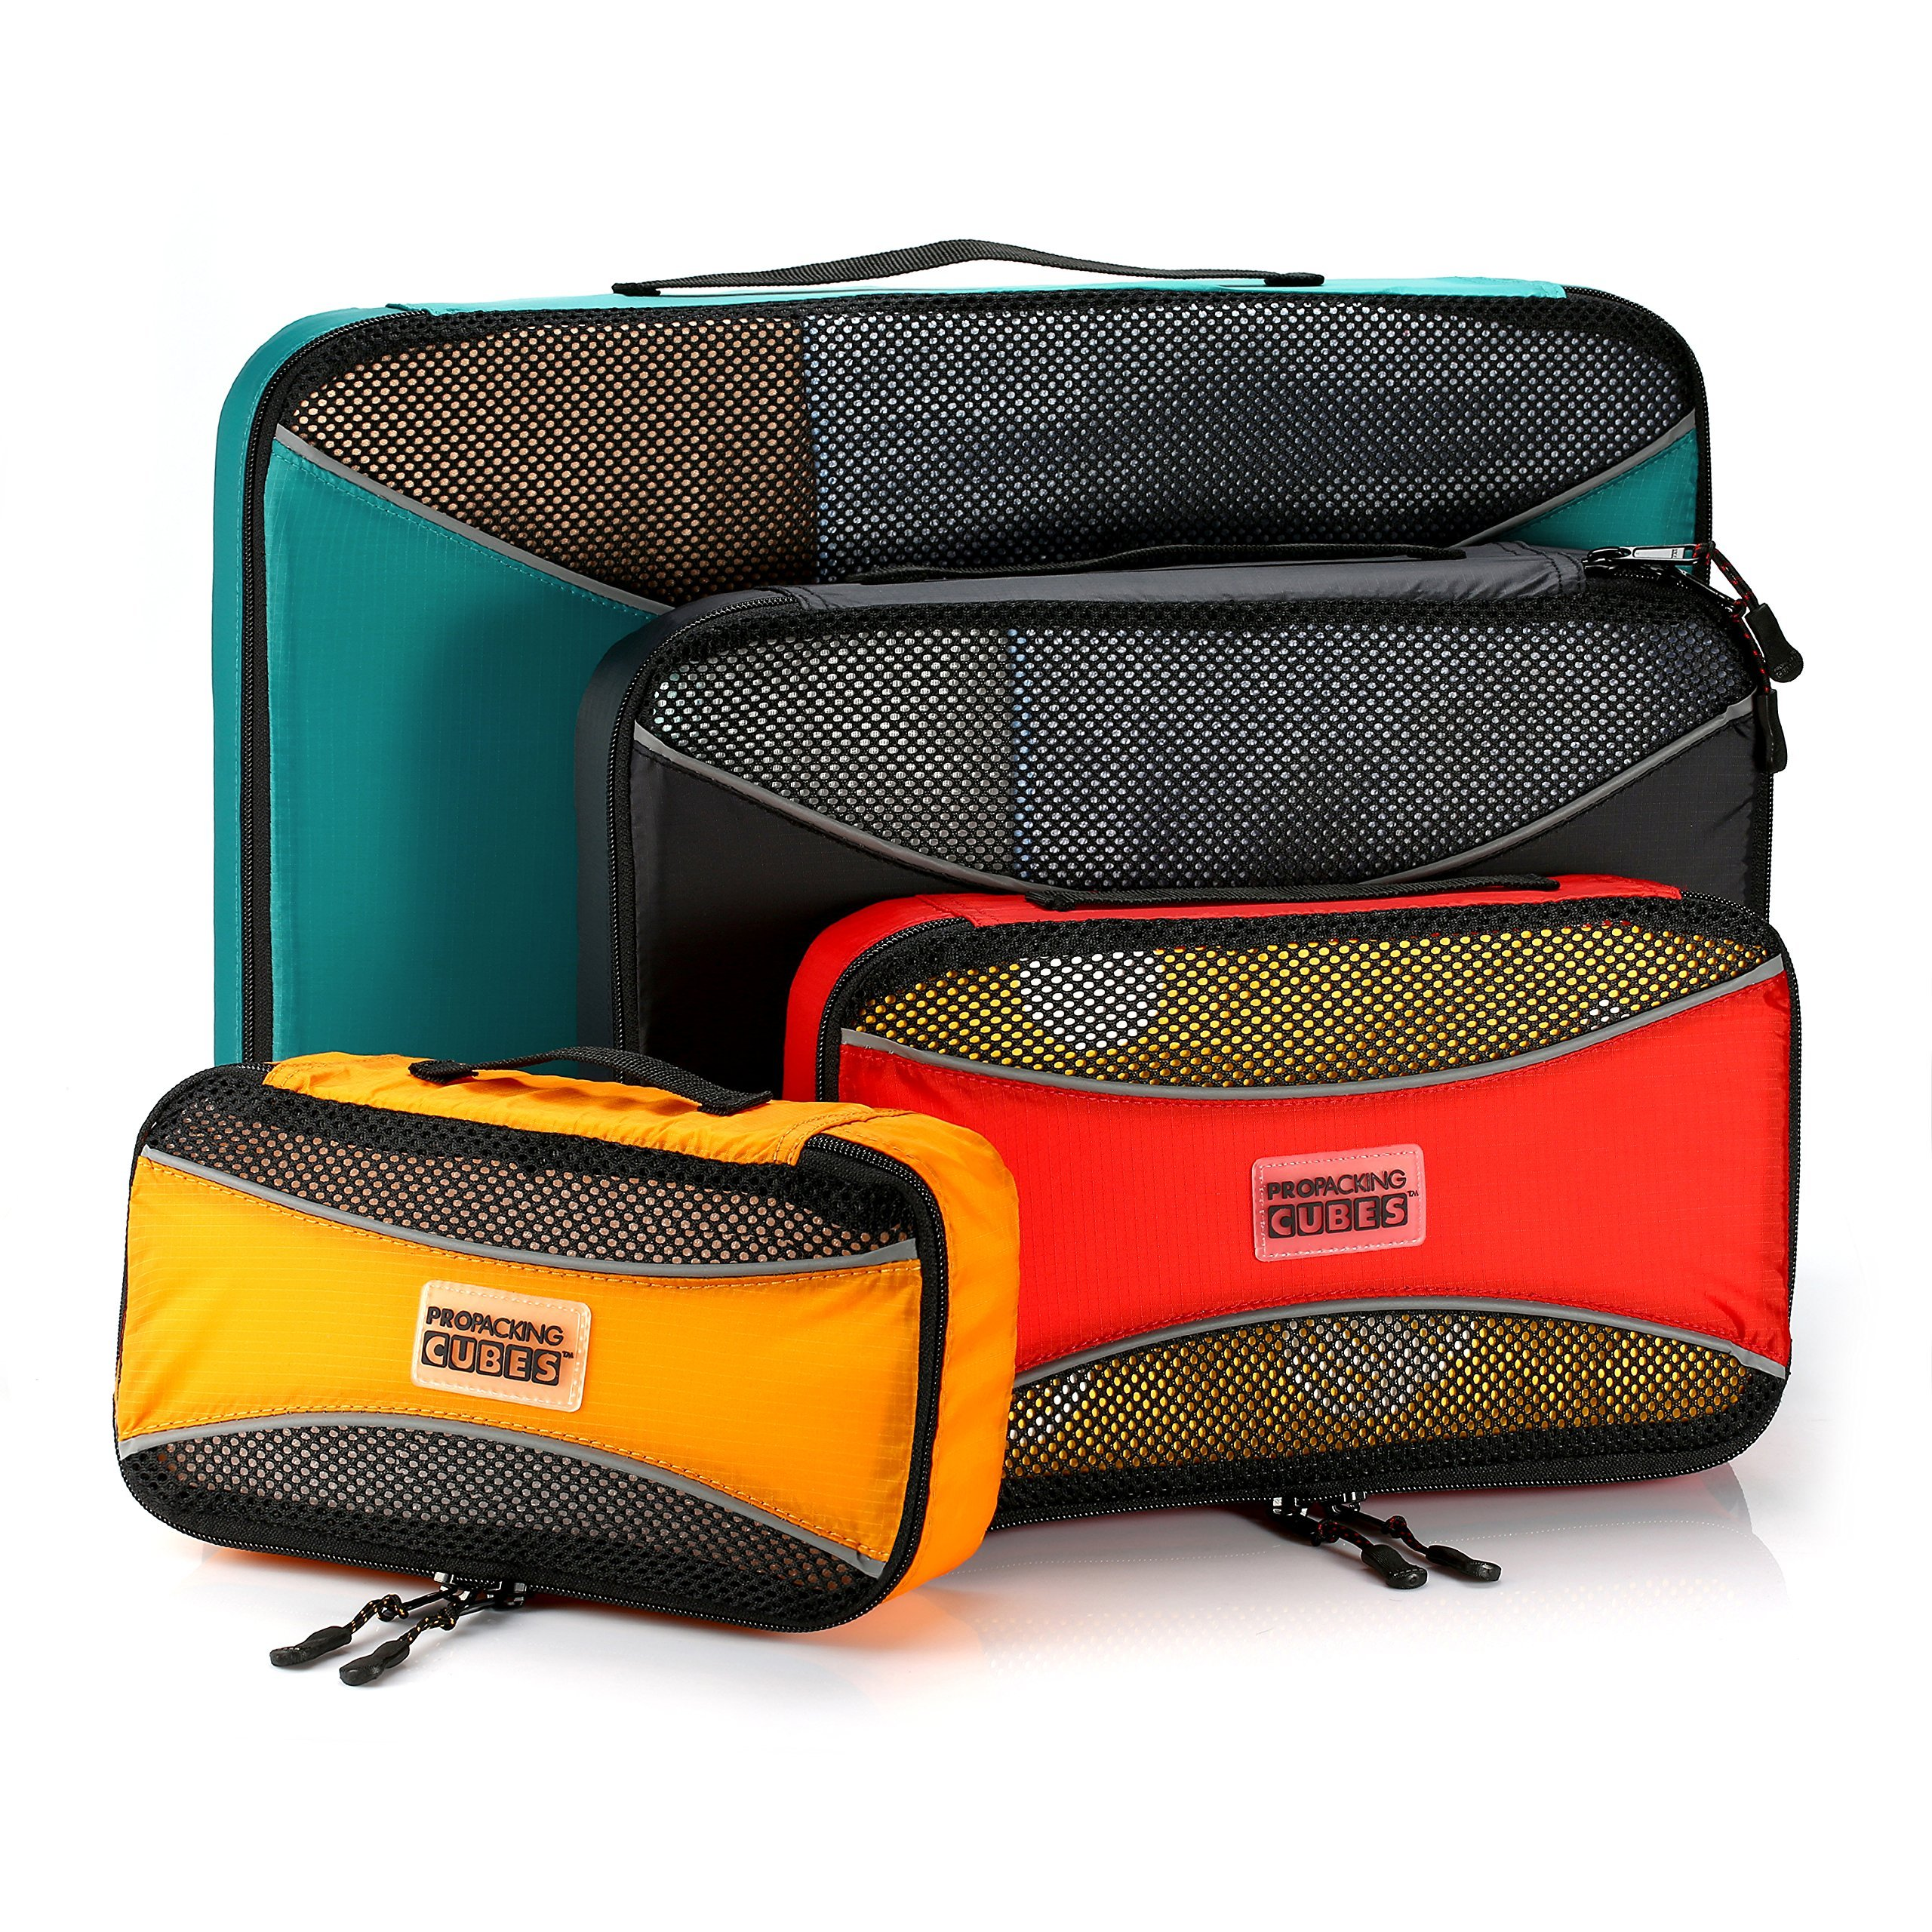 PRO Packing Cubes  Lightweight Travel - Packing for Carry-on Luggage, Suitcase and Backpacking Accessories Set, Mixed Colors - 4 Piece